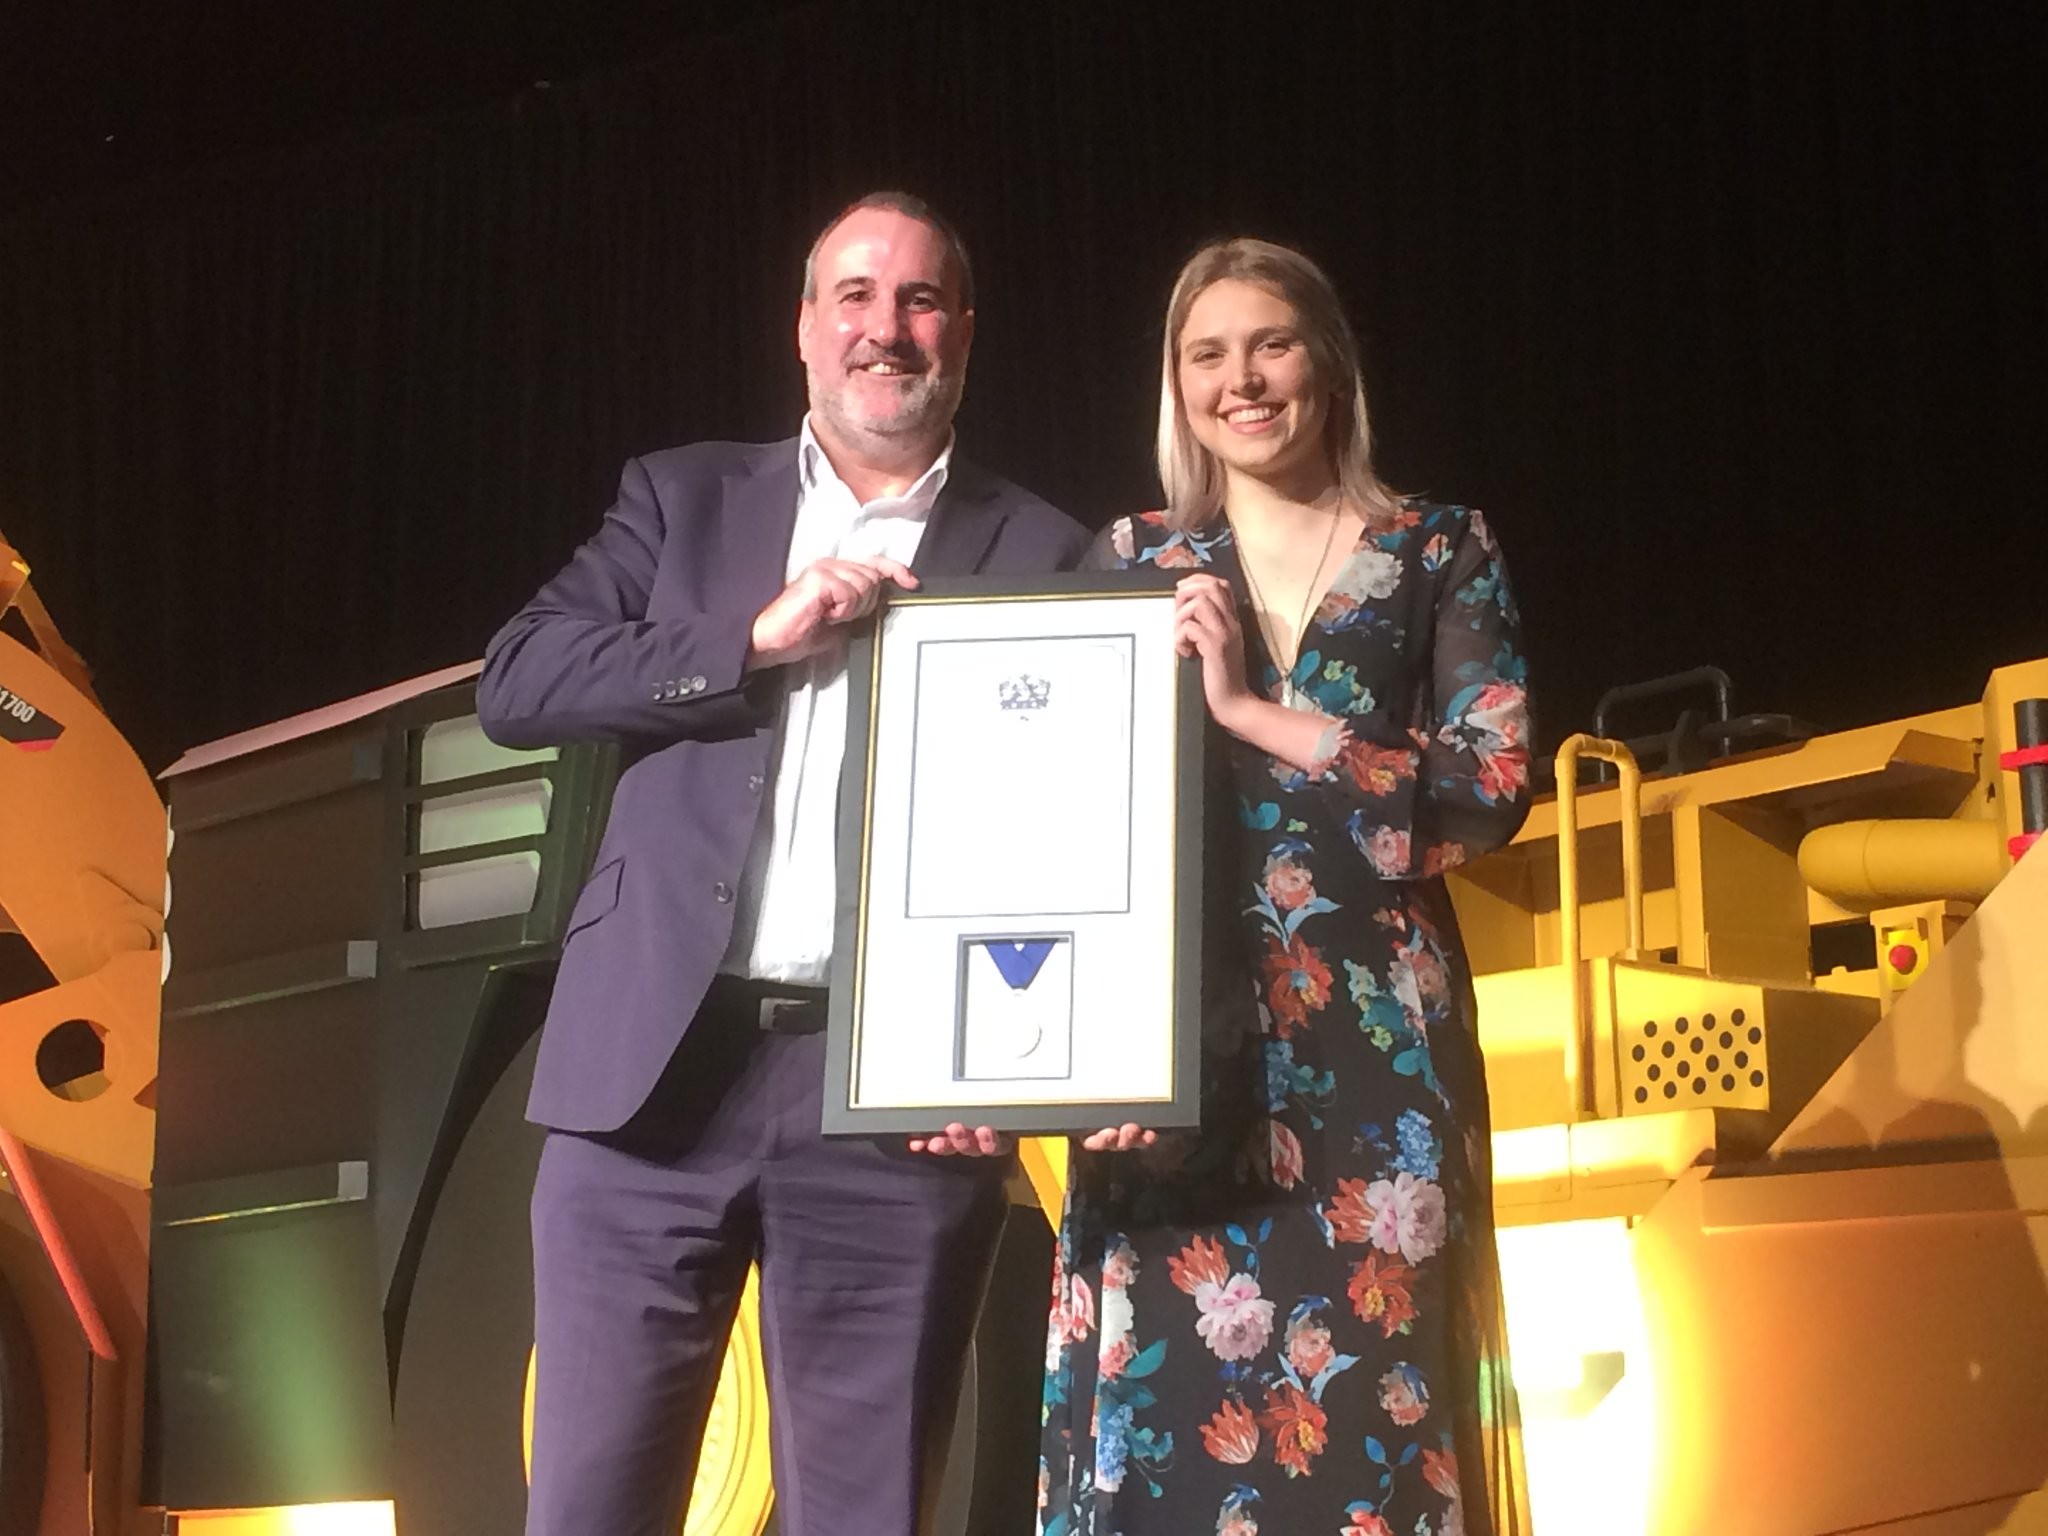 WA School of Mines student Victoria Arrowsmith wins the Ray Finlayson Award, presented by The Perth's Mint's James Ross, major sponsor of the awards.